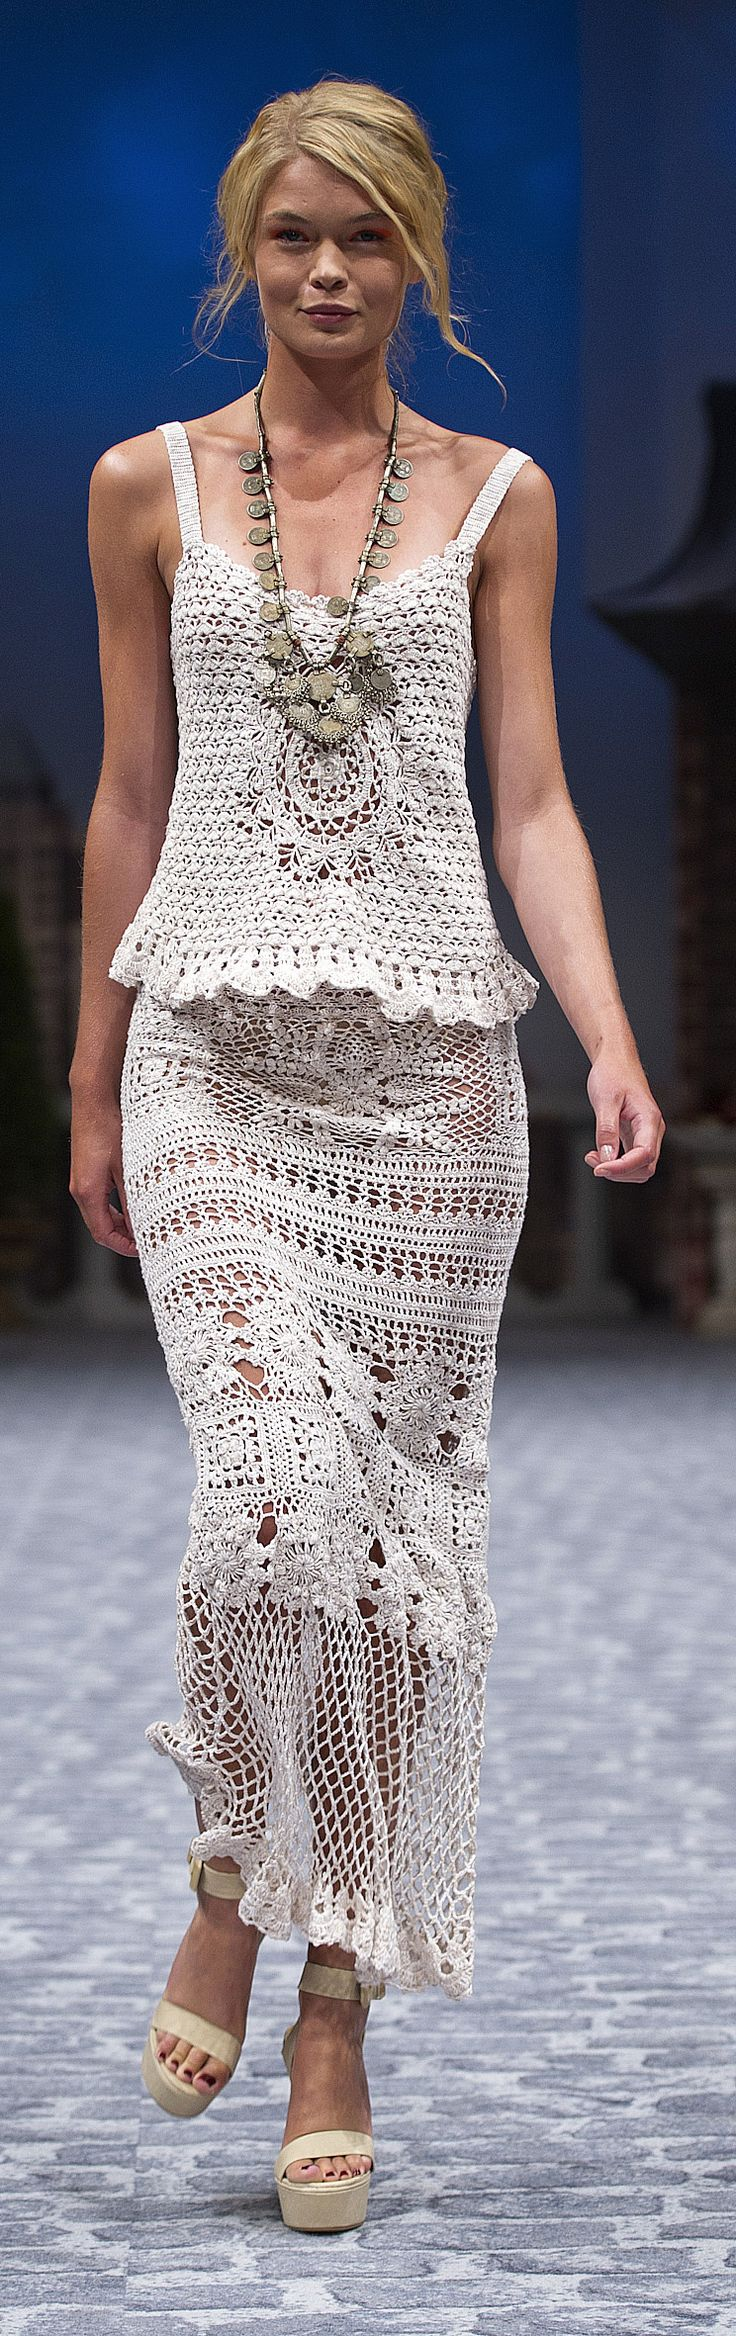 Crochet on the Runway :: Presented for the first time on the catwalks of Mercedez-Benz Fashion Week in Stockholm